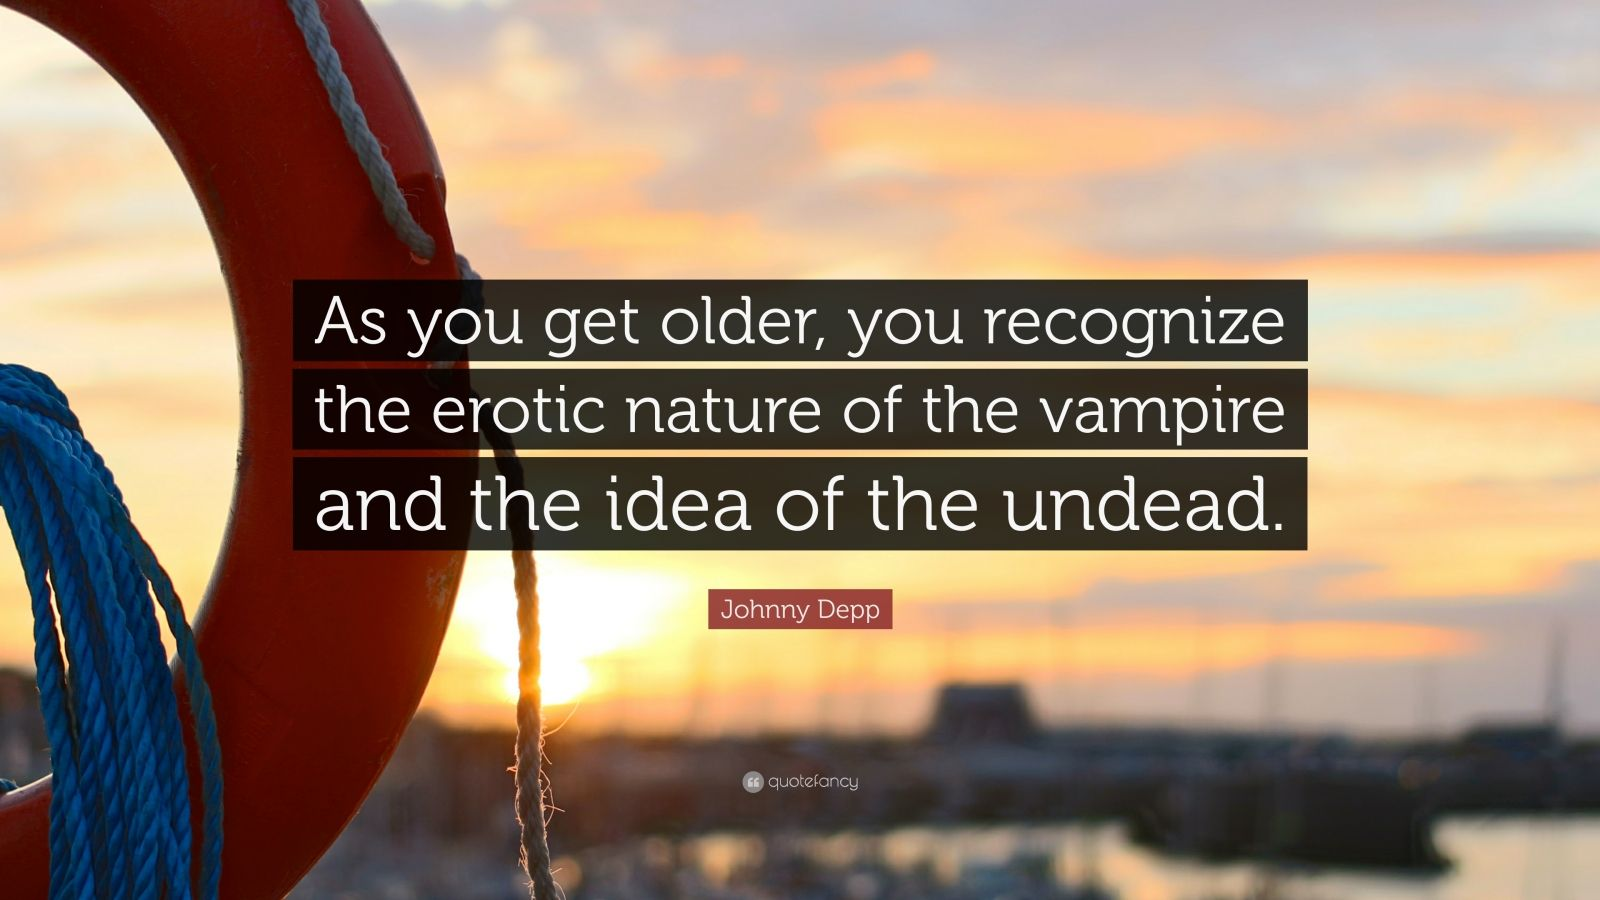 """Johnny Depp Quote: """"As you get older, you recognize the erotic nature of the vampire and the idea of the undead."""""""